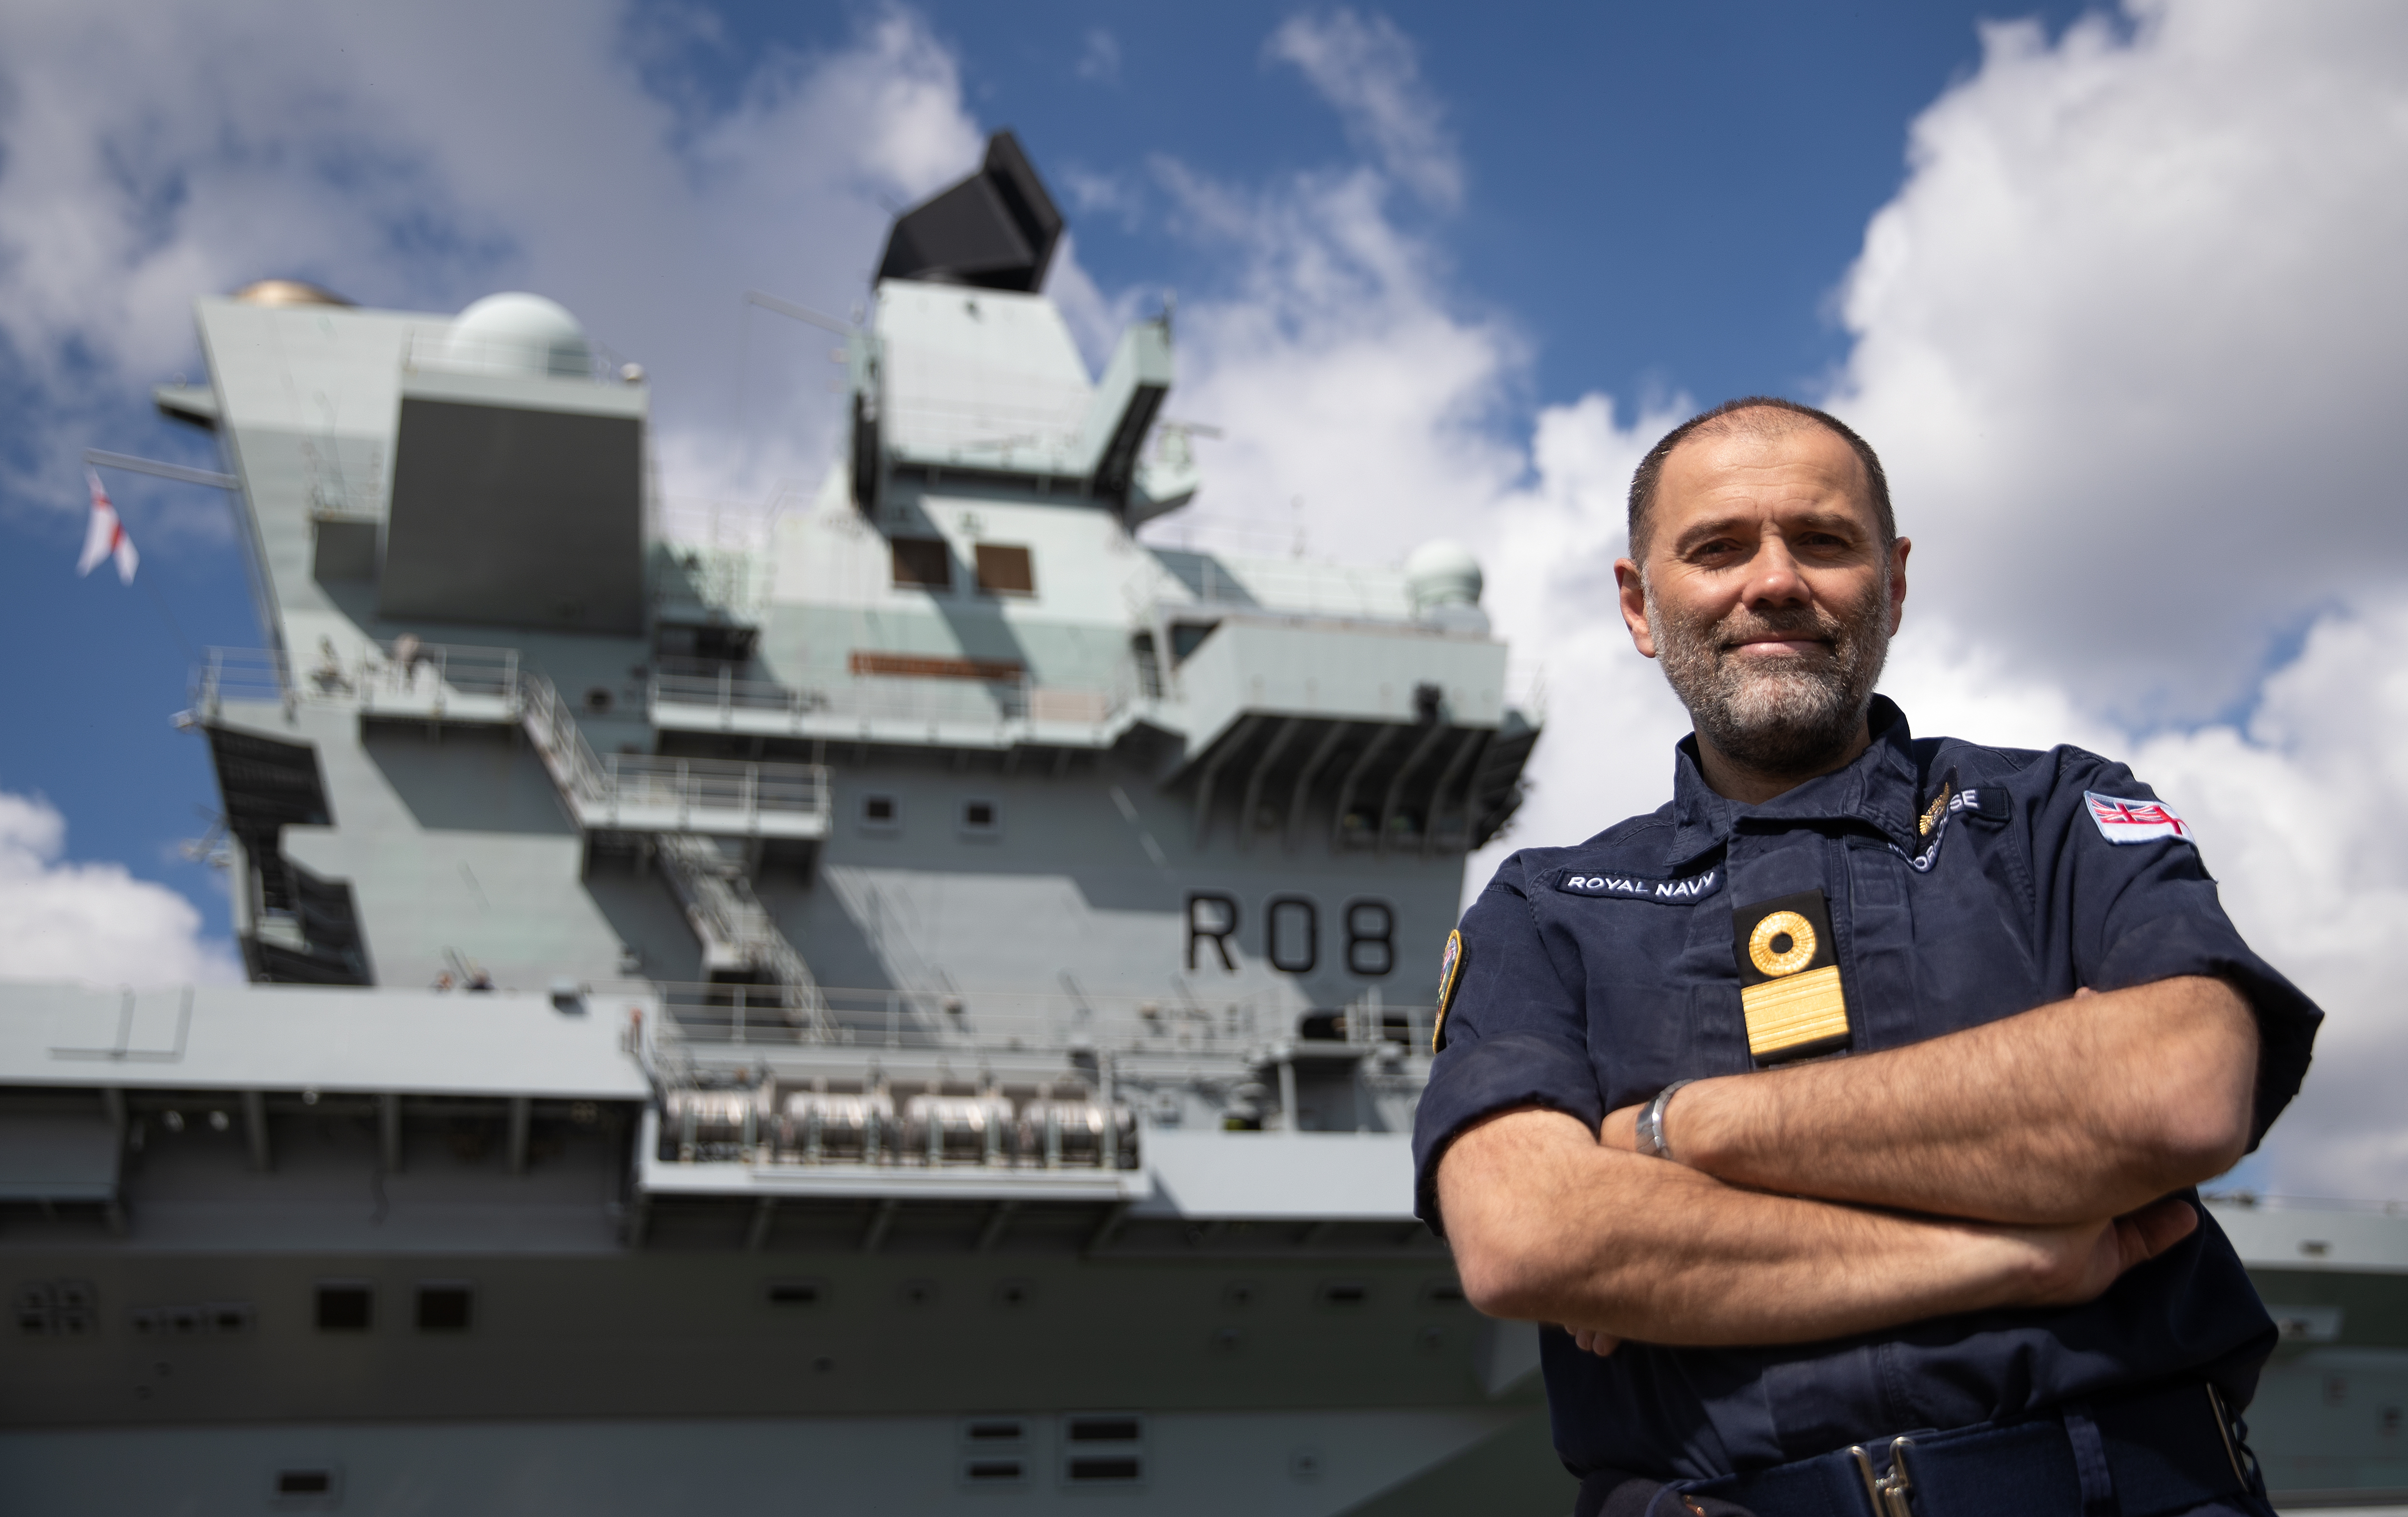 <p>Commodore Steve Moorhouse, Commander UK Carrier Strike Group, poses for a photograph in front of the Royal Navy aircraft carrier HMS Queen Elizabeth at Portsmouth Naval Base, Hampshire, as final preparations are made ahead its first operational deployment to the Indo-Pacific region. Picture date: Thursday April 29, 2021.</p>